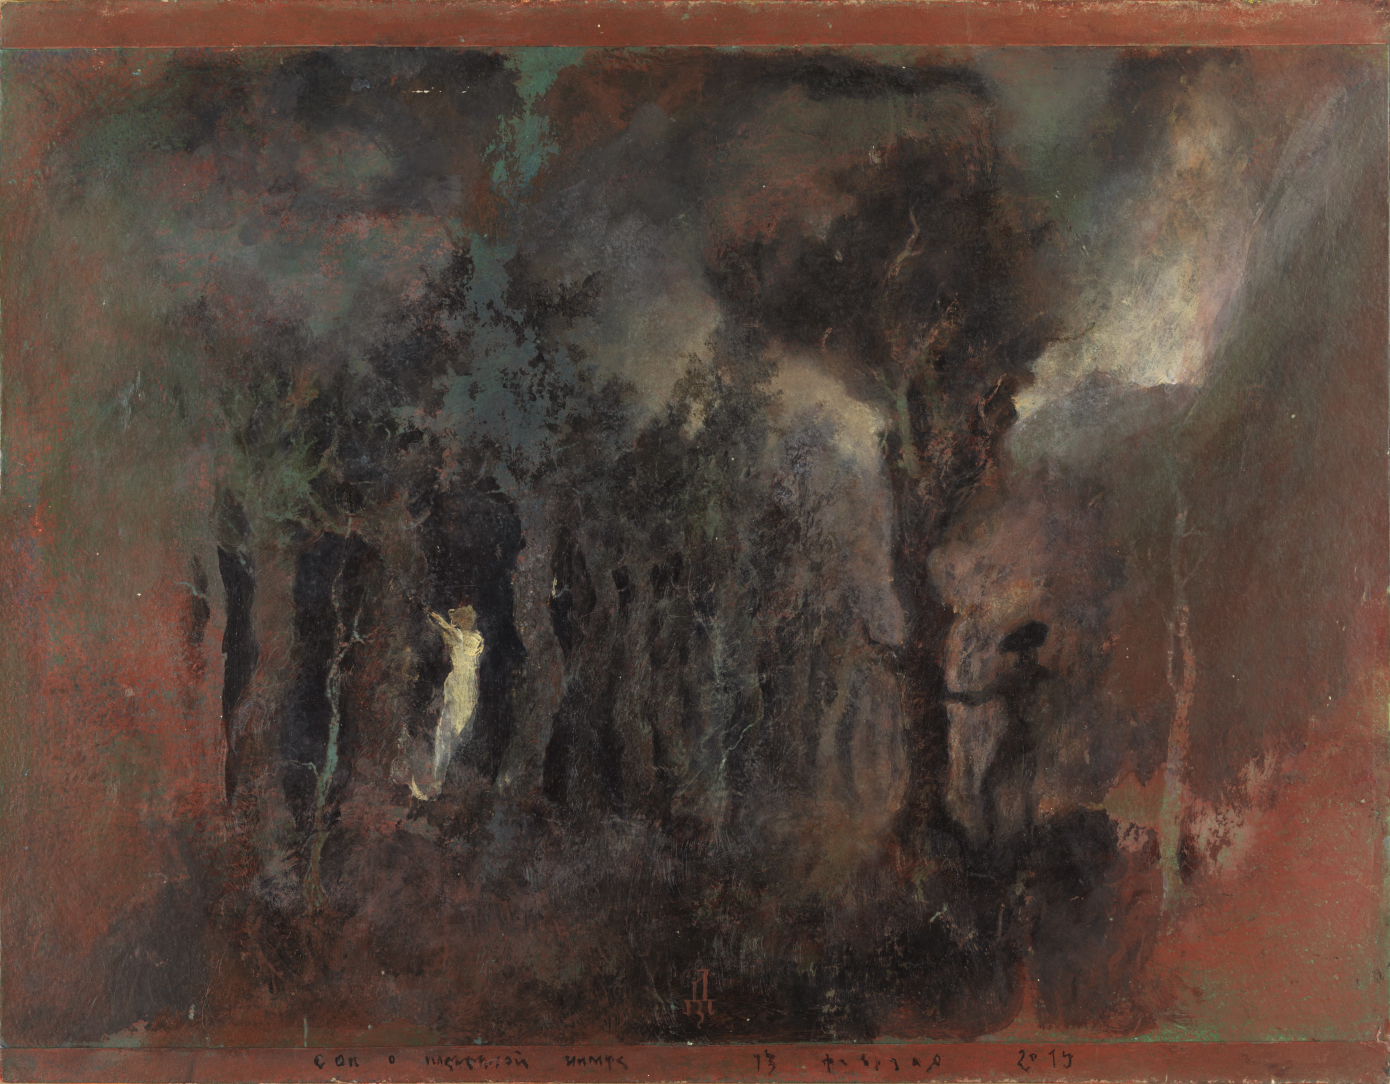 painting of Dream vision of a captive nymph by Denis Forkas